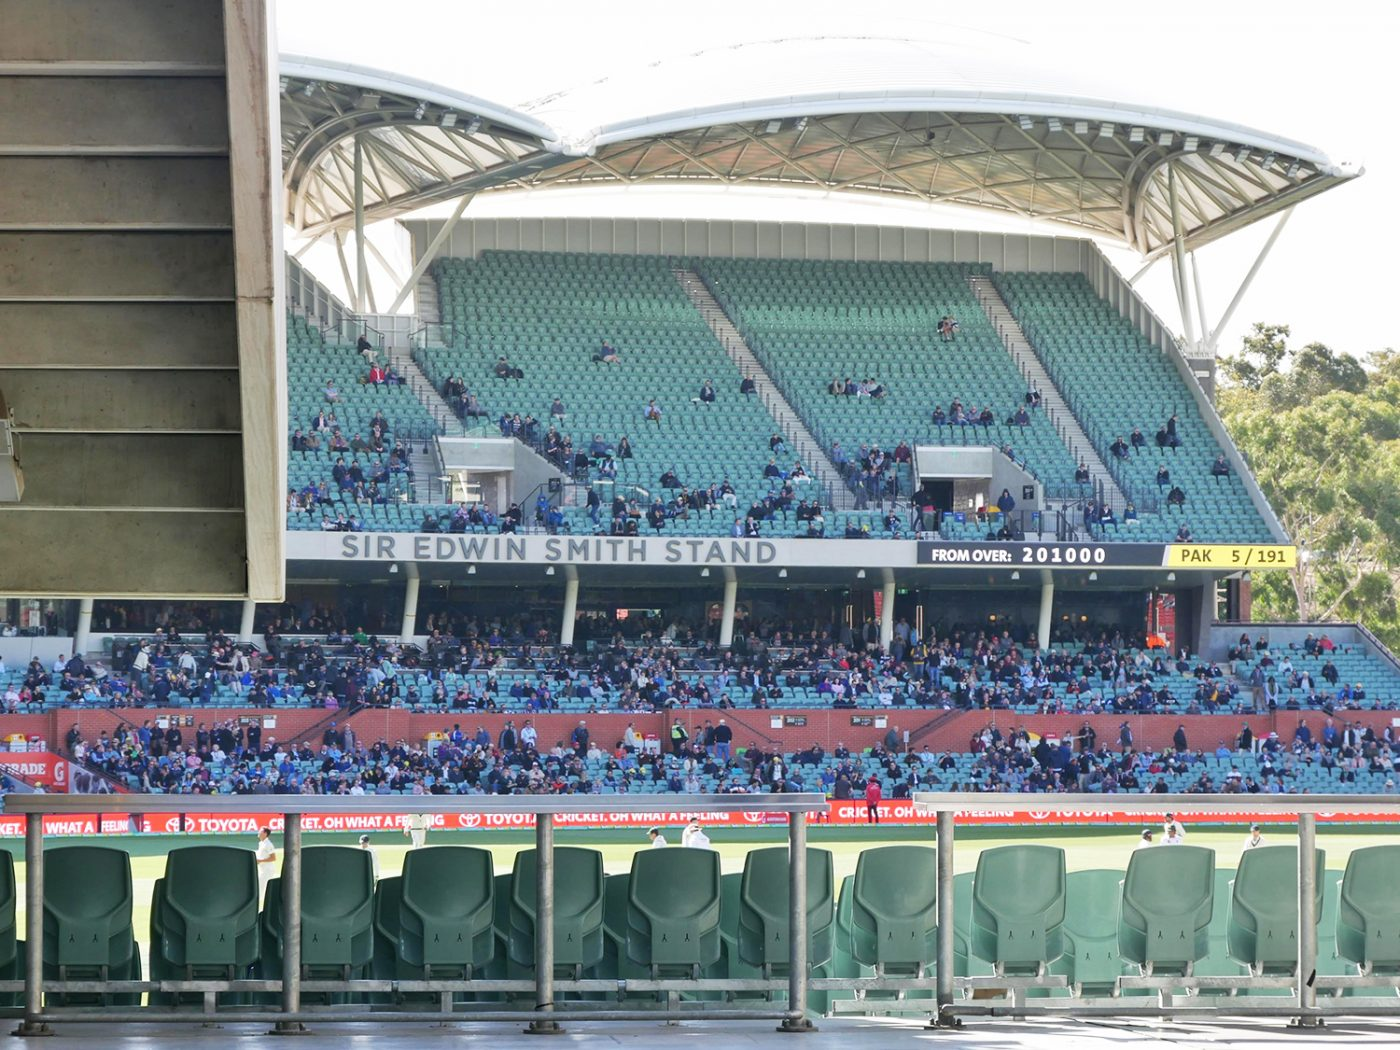 In the Adelaide Oval